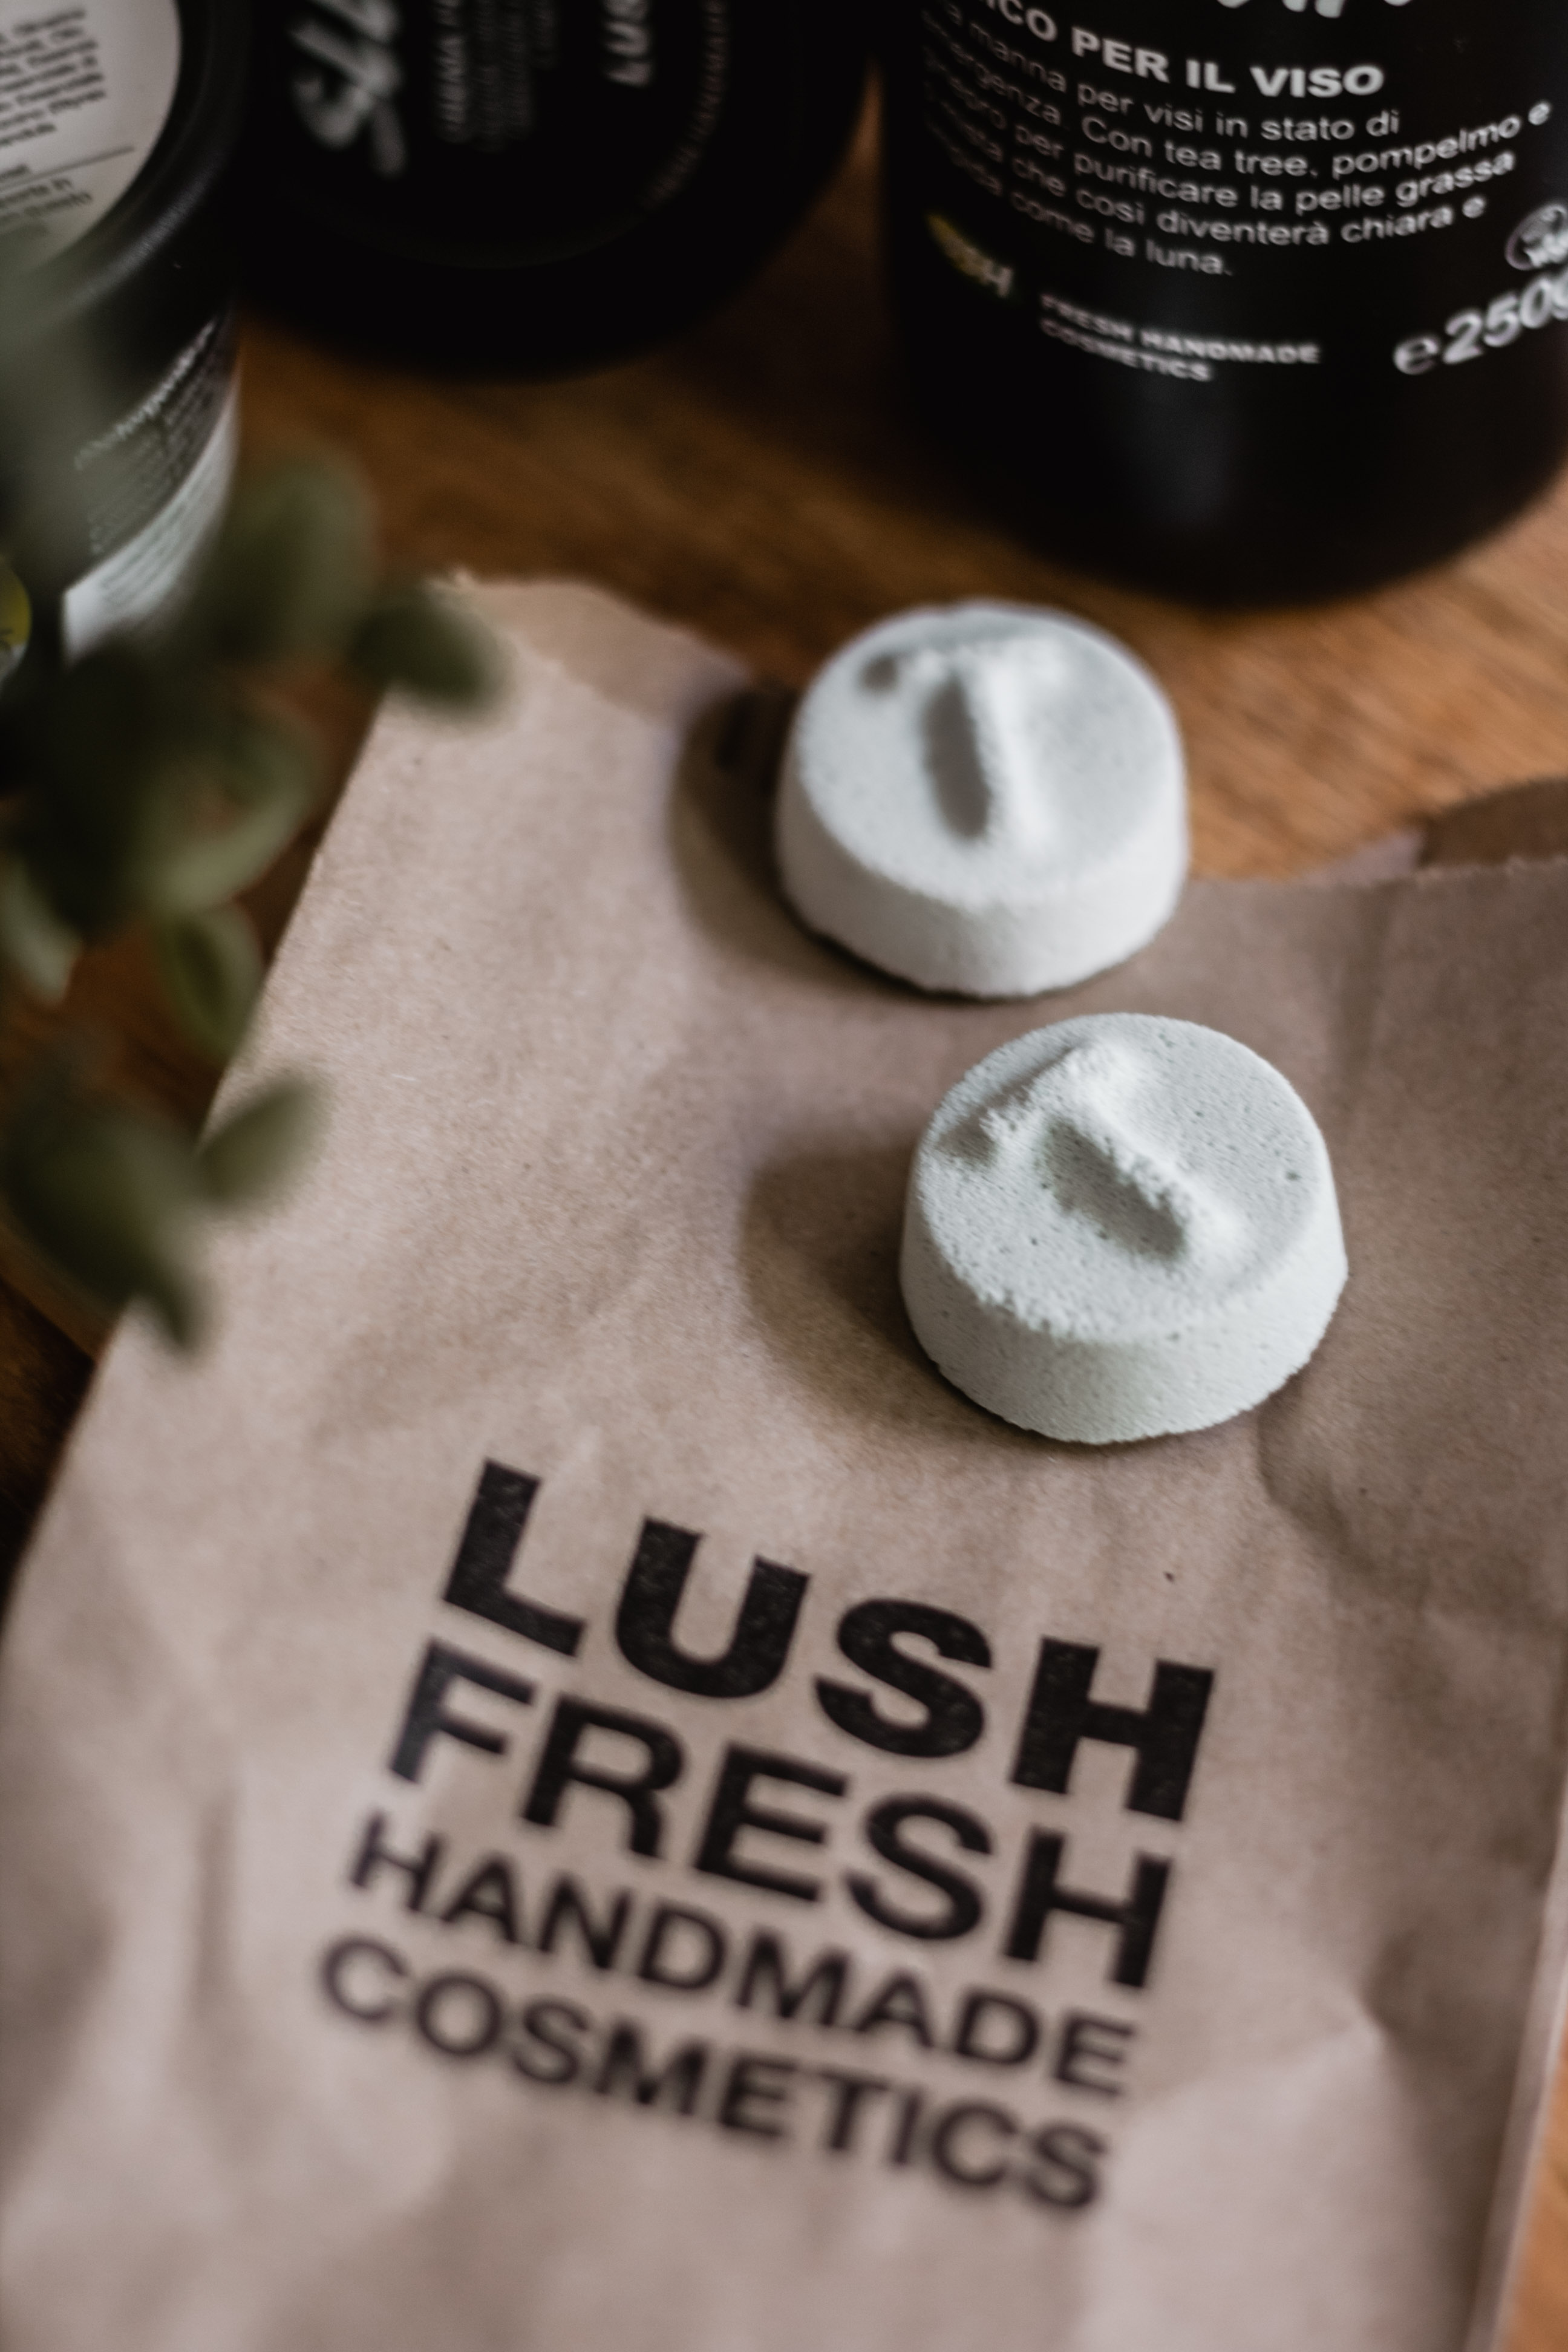 Lush Haul - Tea Tree Toner Tabs